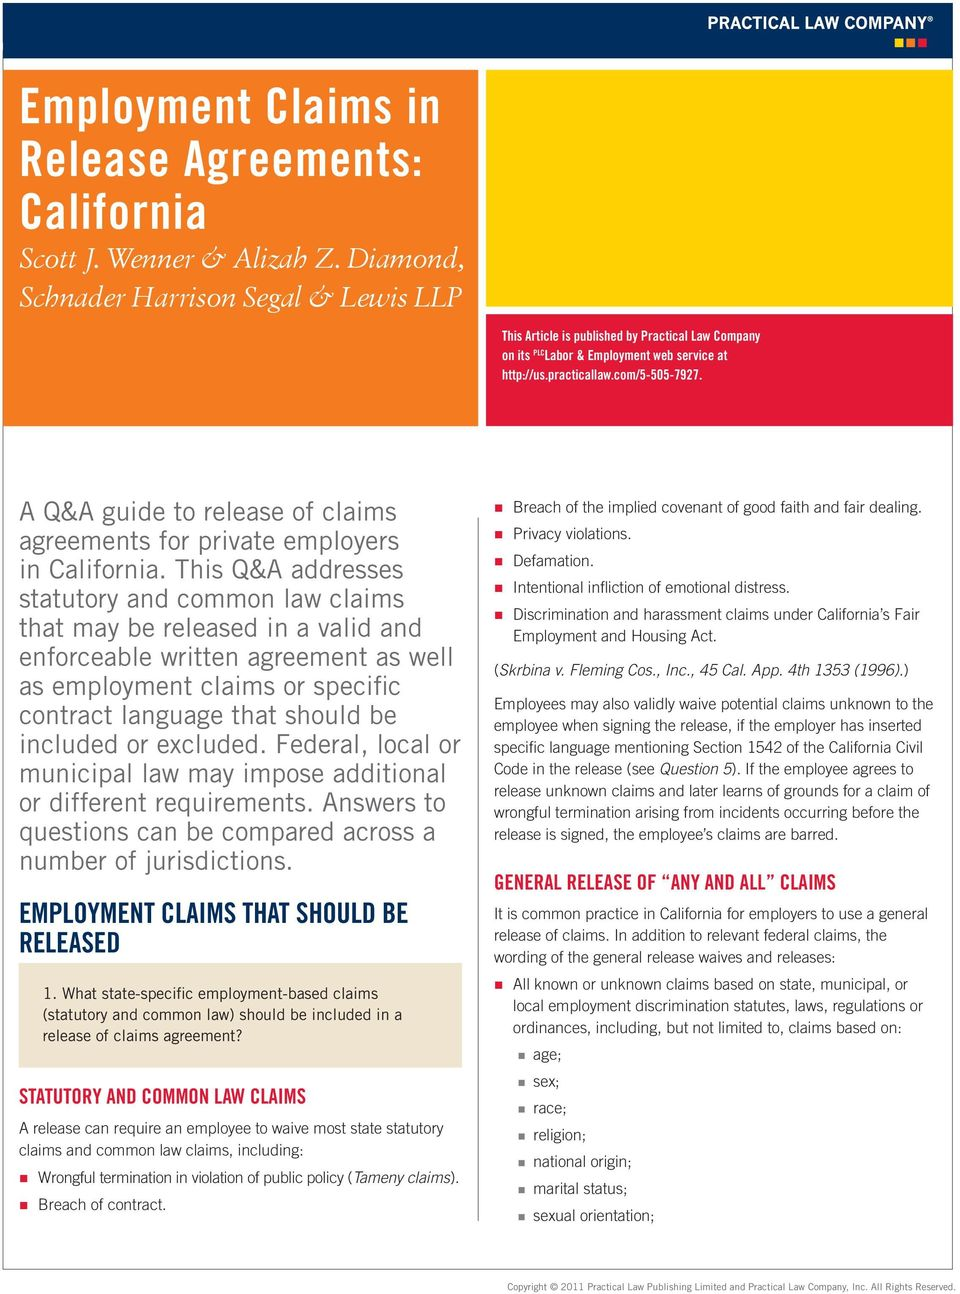 A Q&A guide to release of claims agreements for private employers in California.